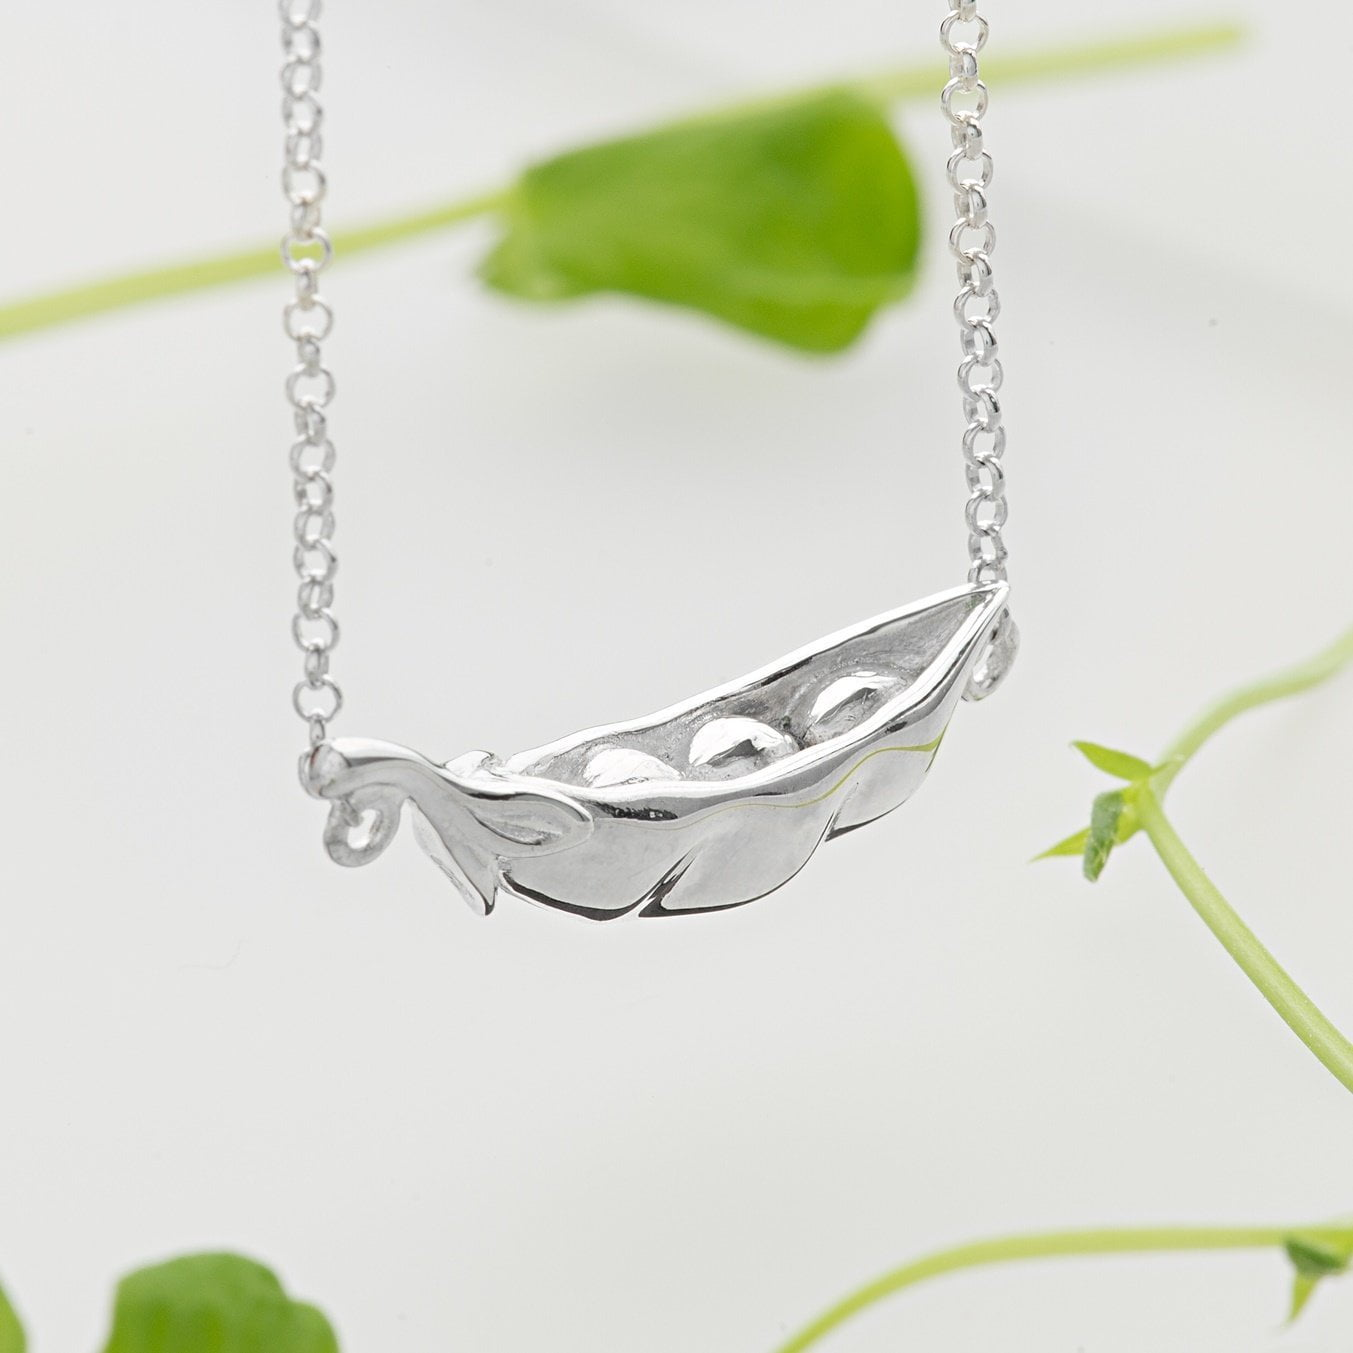 Personalised Silver Peas in a Pod Necklace - Lily Charmed